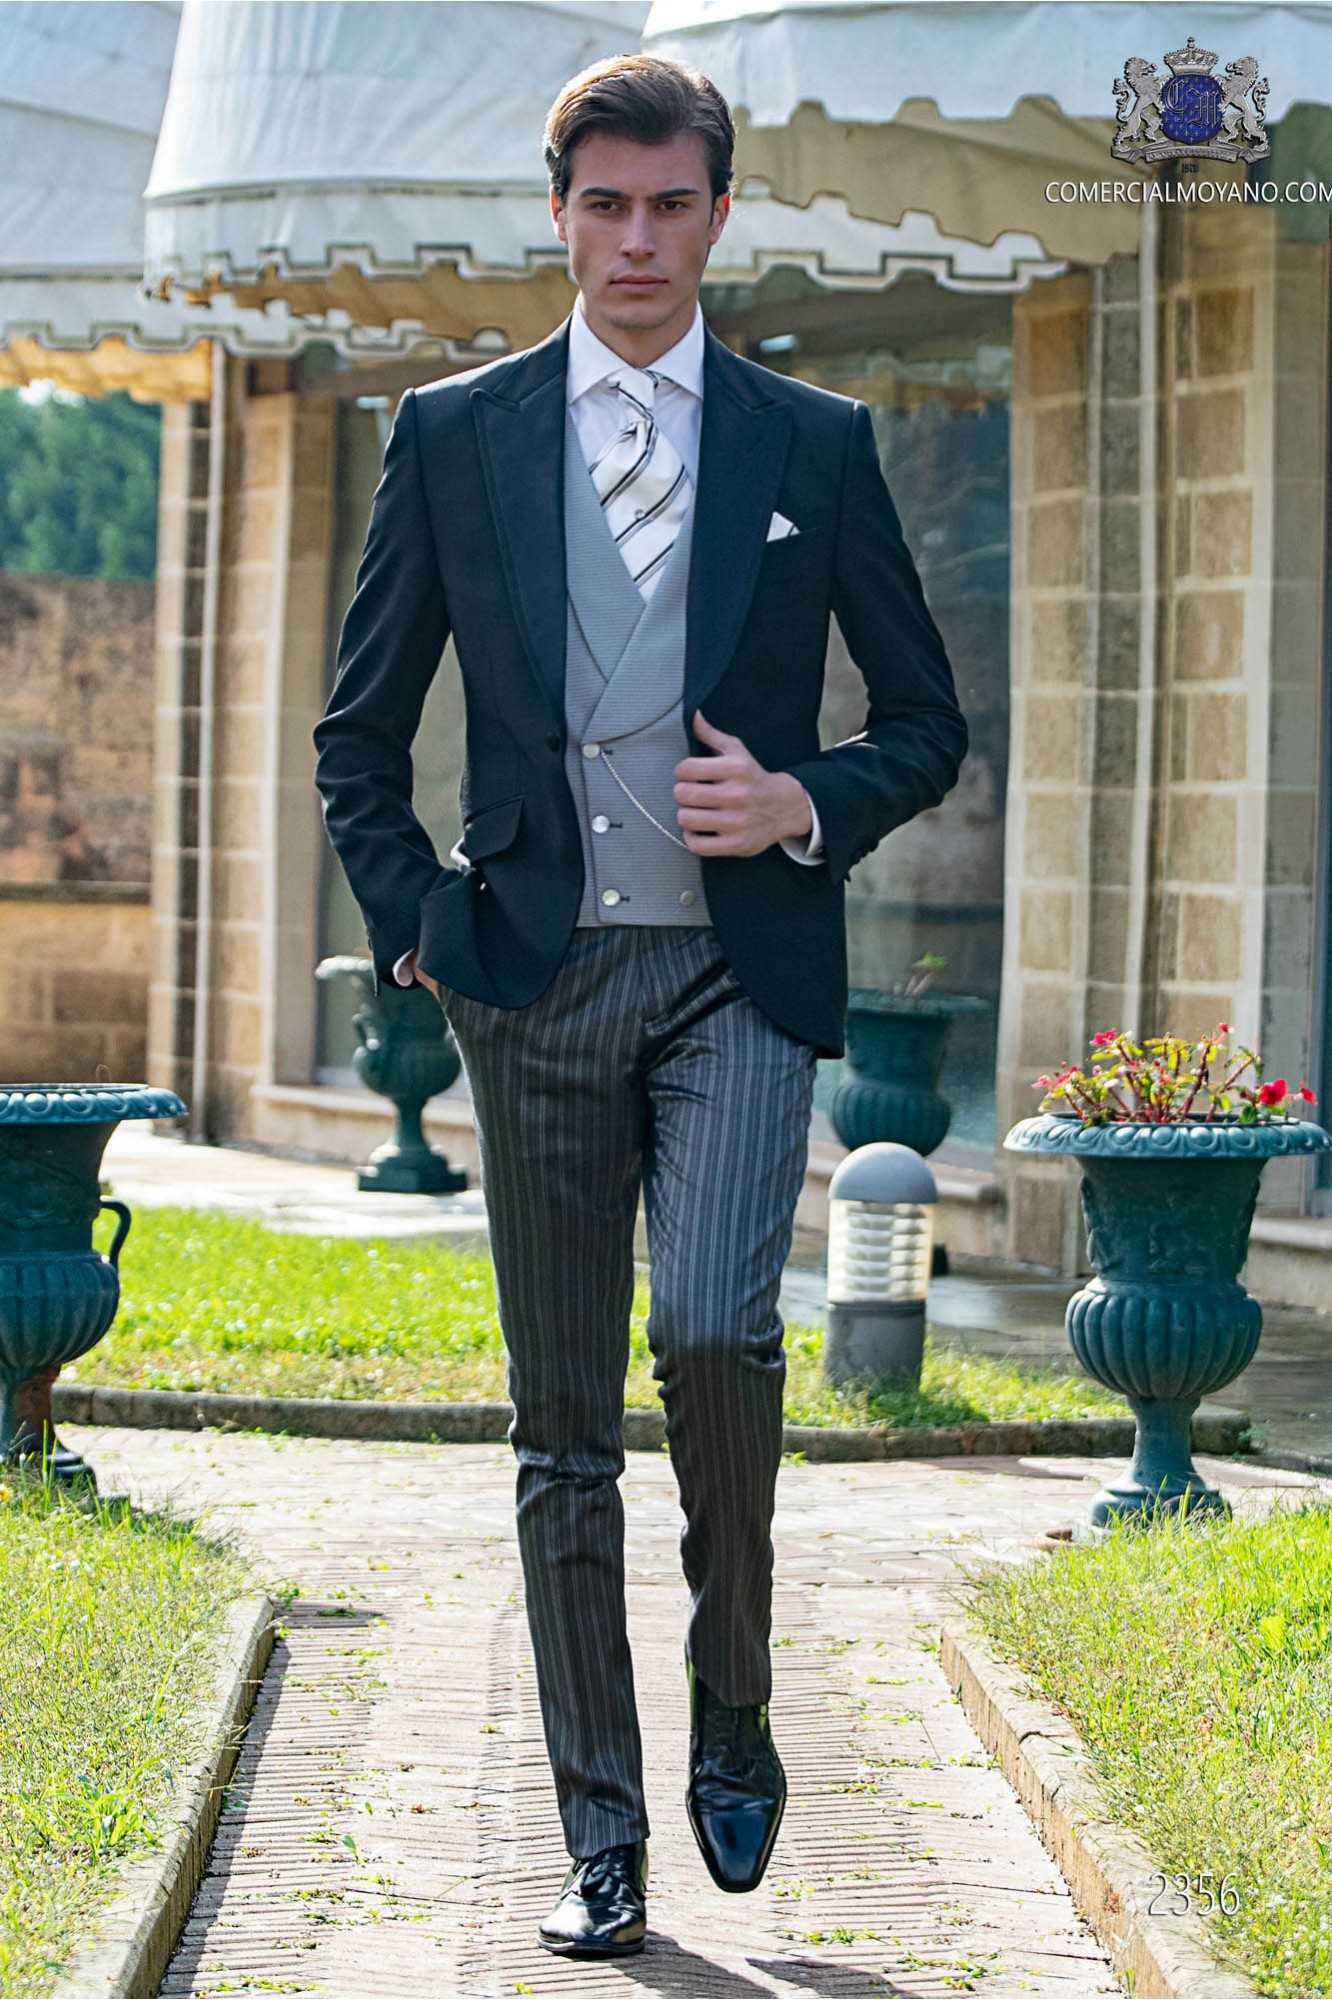 Wedding Attire For Men.Italian Black Men Wedding Suit Coordinated With Pinstripe Trousers